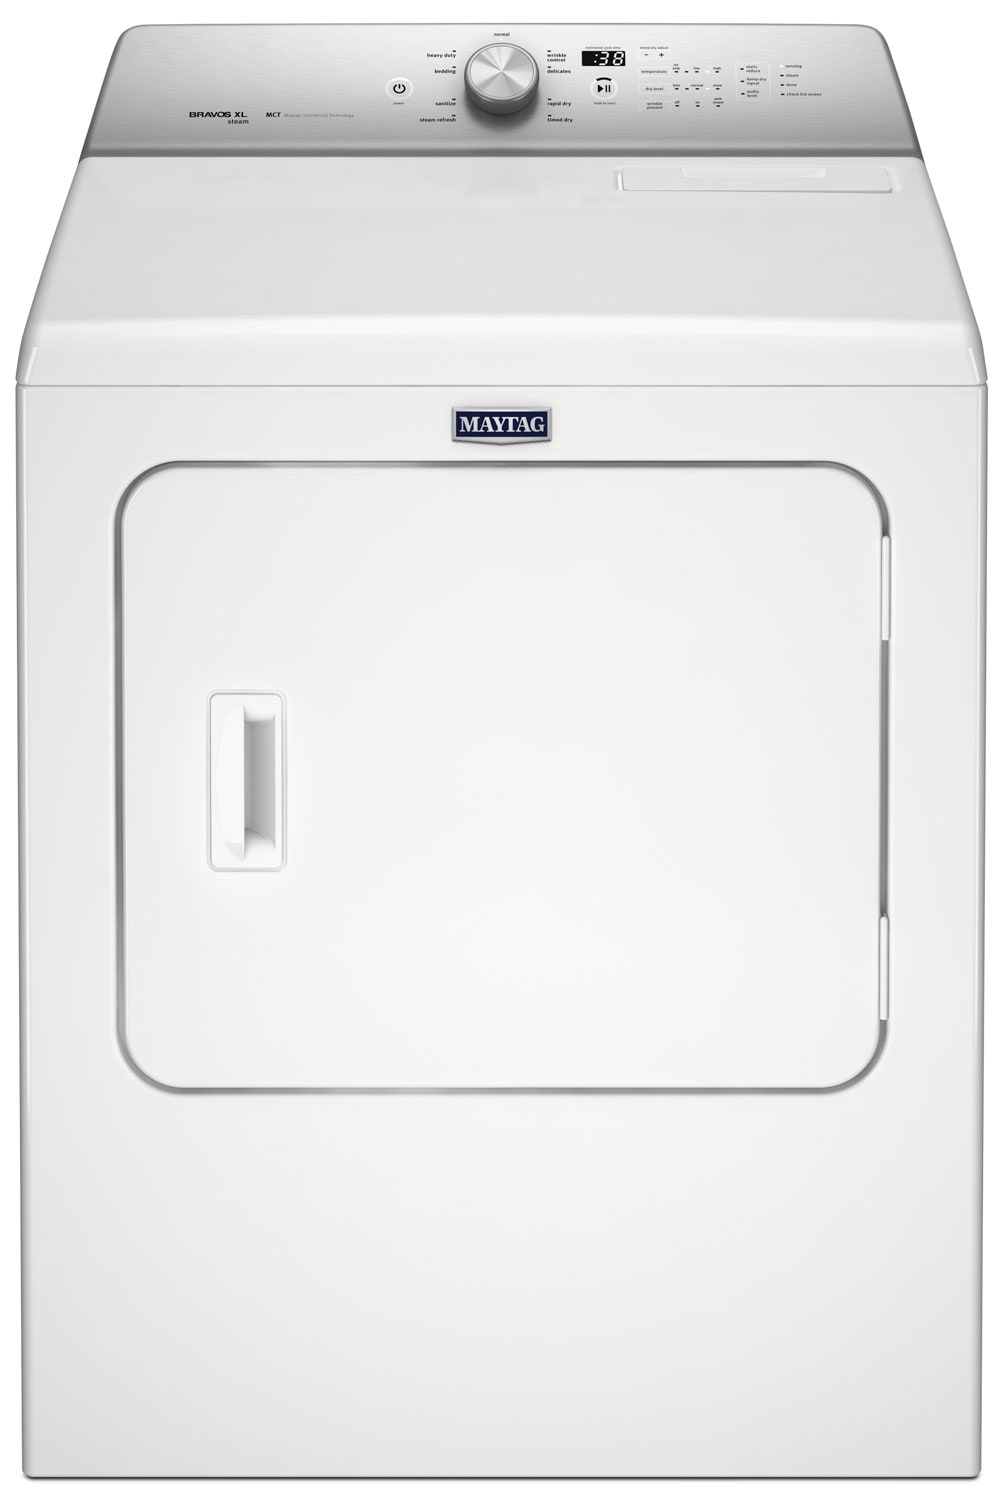 Washers and Dryers - Maytag Gas Dryer (7.0 Cu. Ft.) MGDB755DW